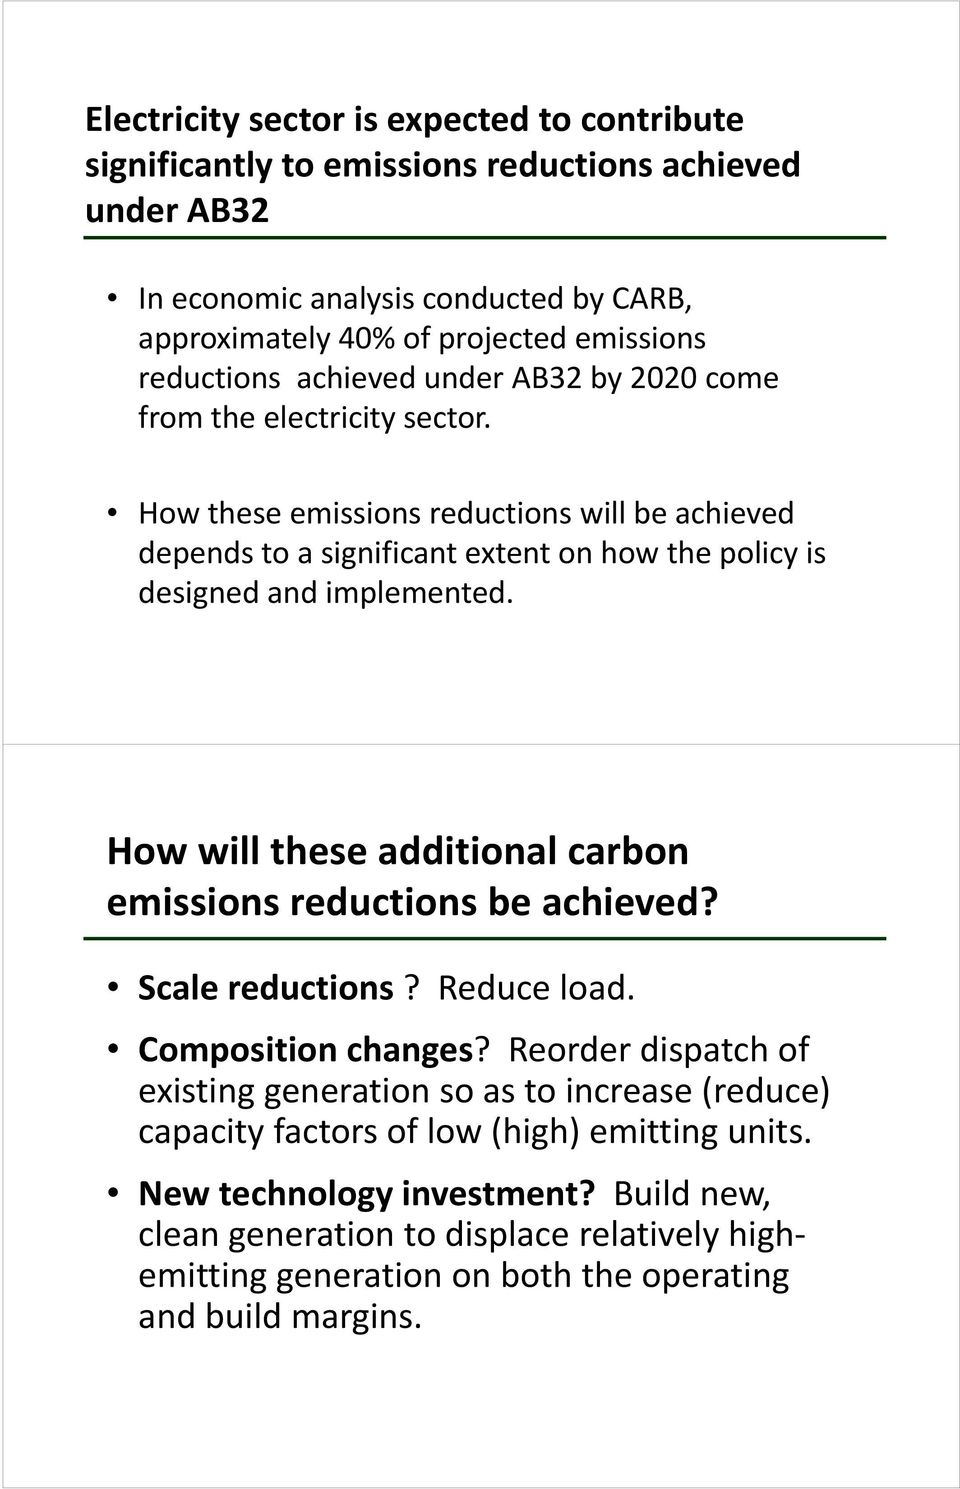 How these emissions reductions will be achieved depends to a significant extent on how the policy is designed and implemented.